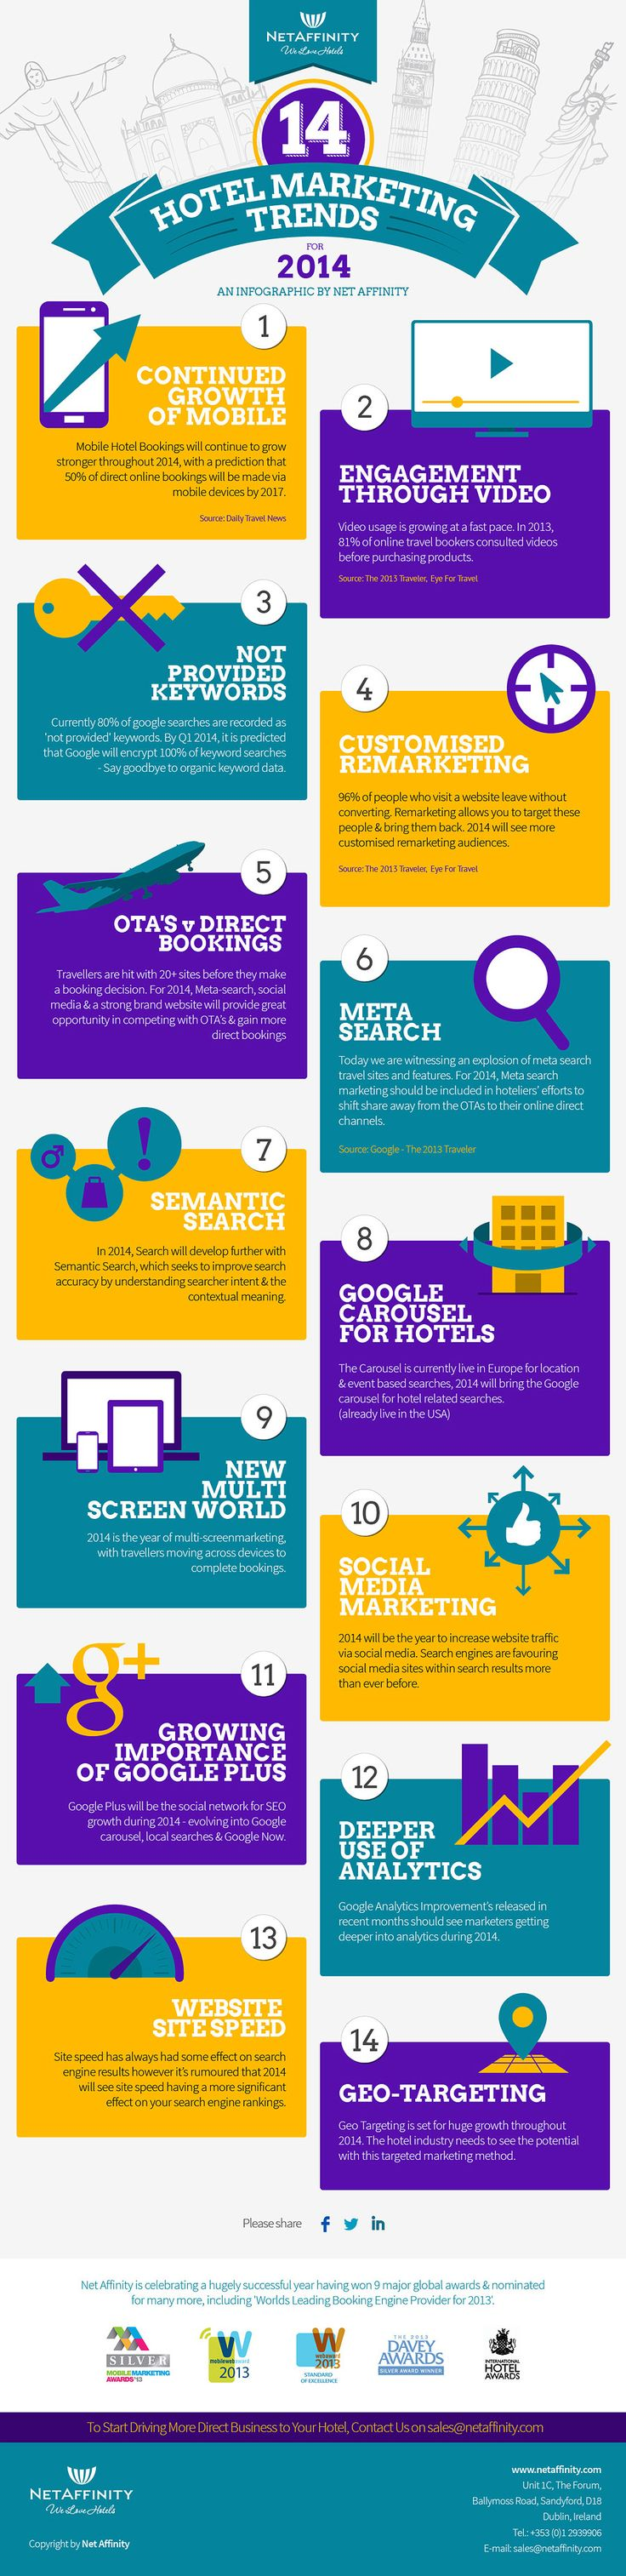 14 Hotel Marketing Trends For 2014 [INFOGRAPHIC]